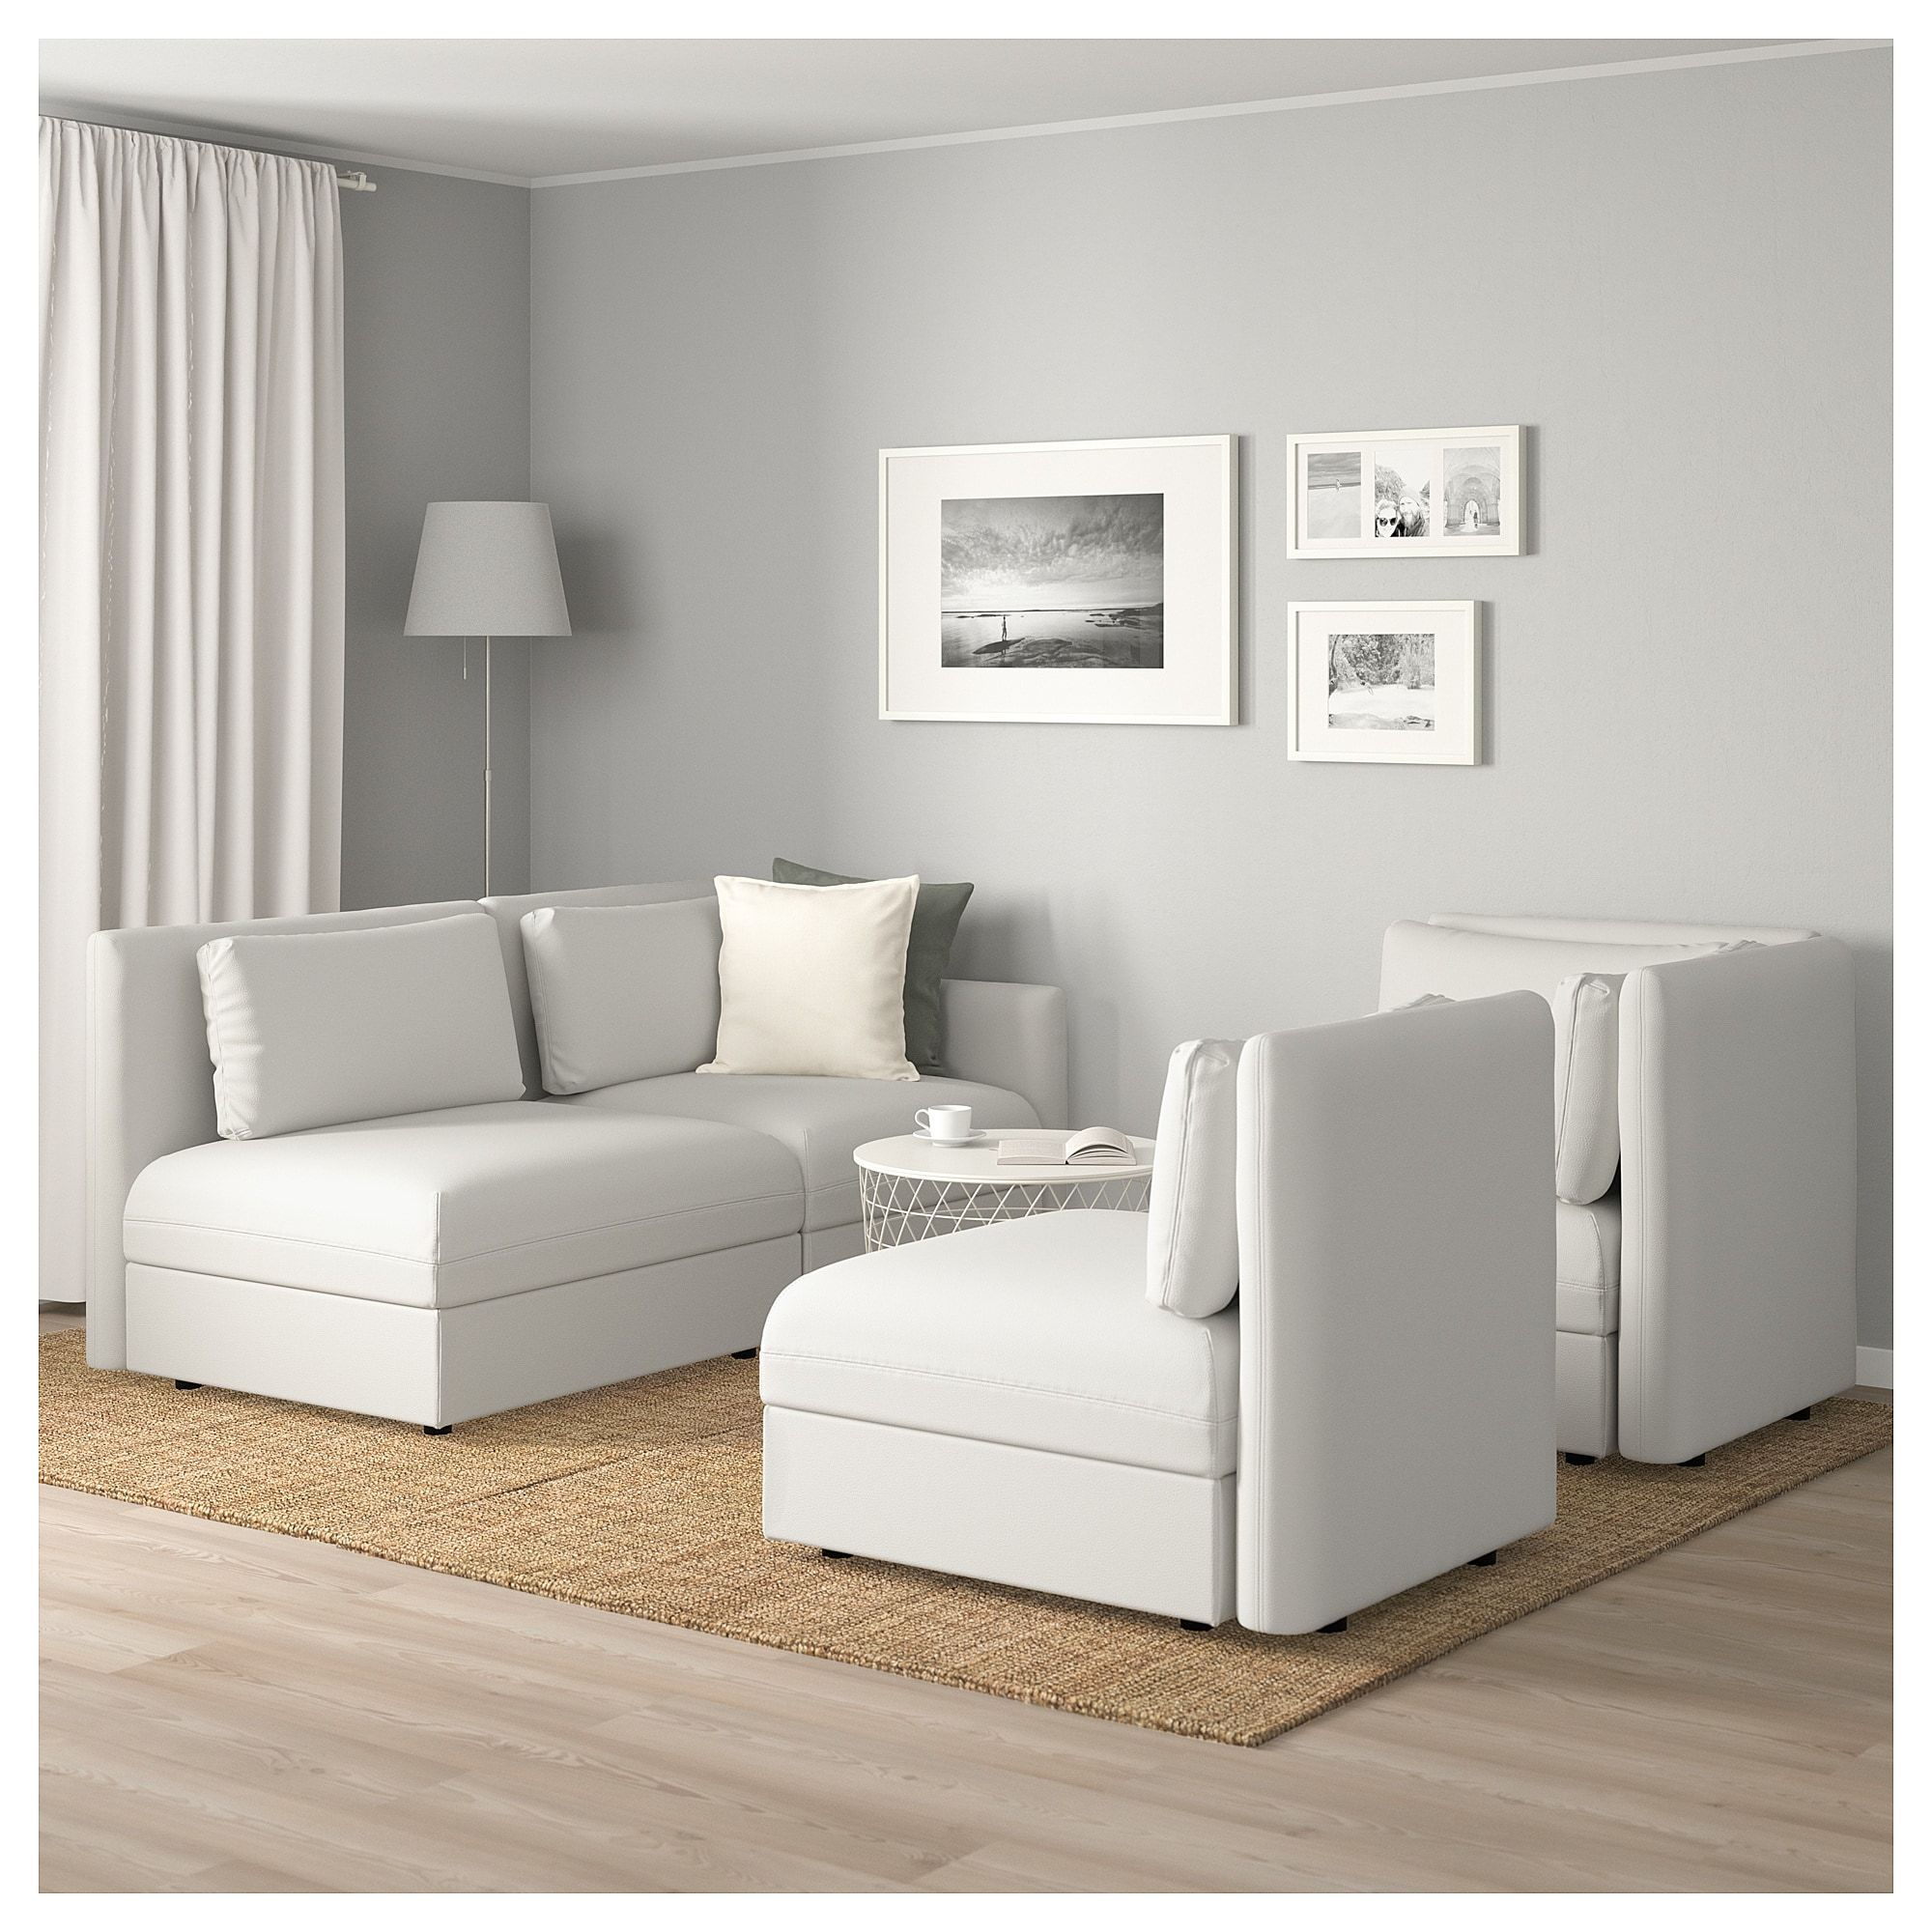 Vallentuna Modular Corner Sofa 3 Seat With Storage Murum White Modular Corner Sofa Corner Sofa Living Room Without Tv